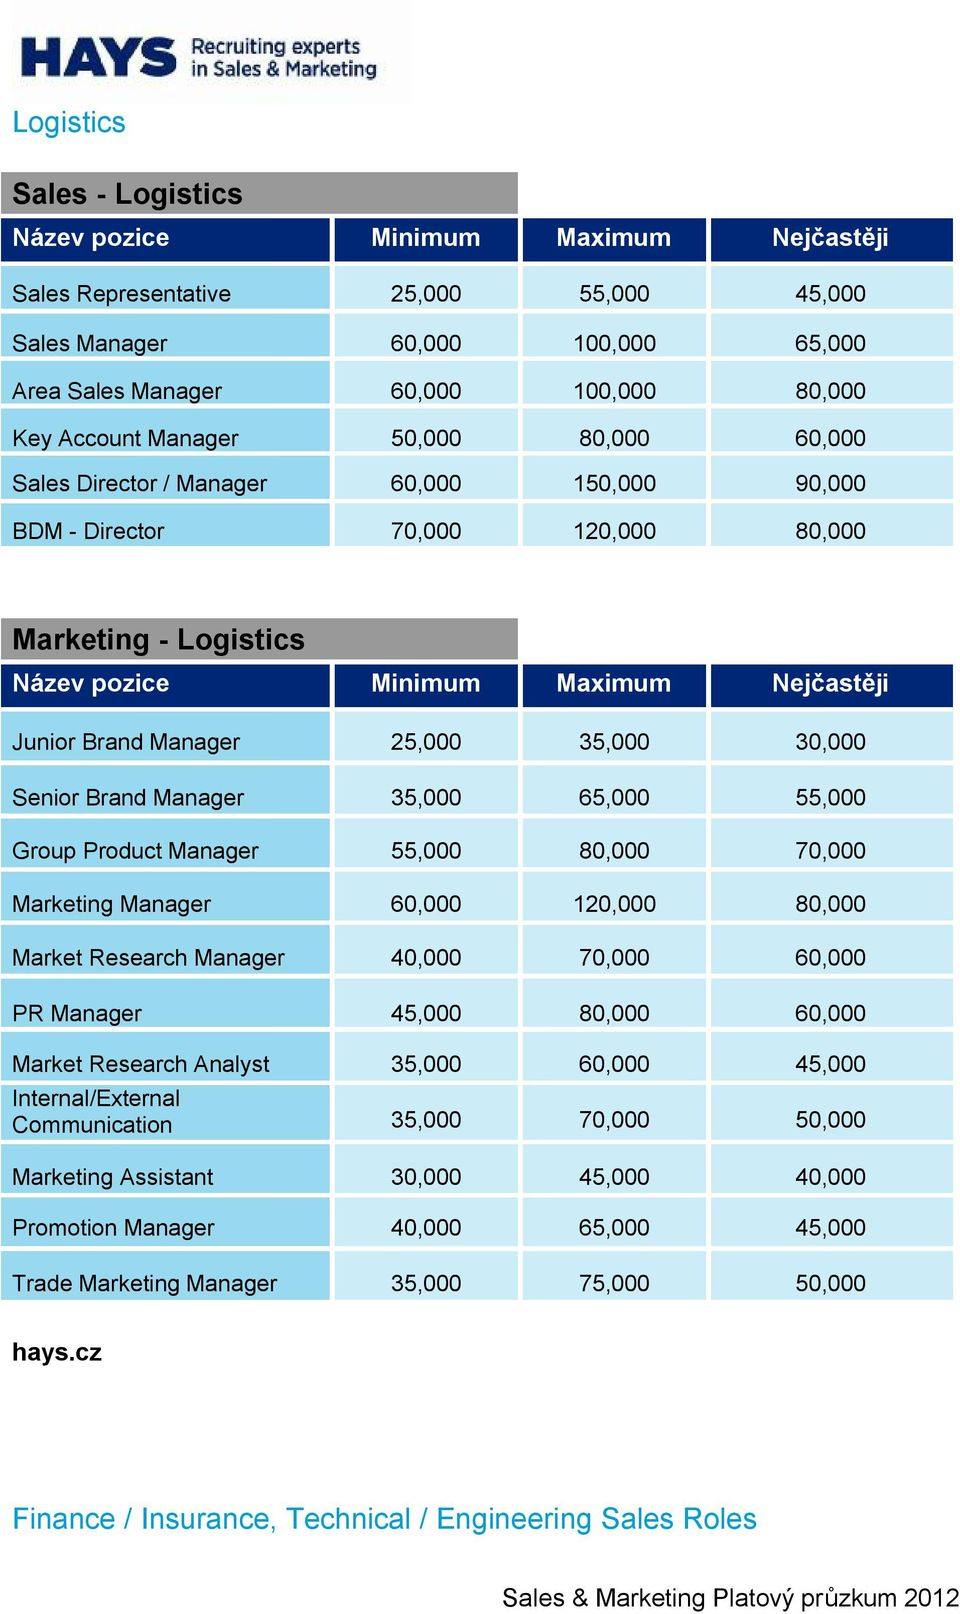 Manager 55,000 80,000 70,000 Marketing Manager 60,000 120,000 80,000 Market Research Manager 40,000 70,000 60,000 PR Manager 45,000 80,000 60,000 Market Research Analyst 35,000 60,000 45,000